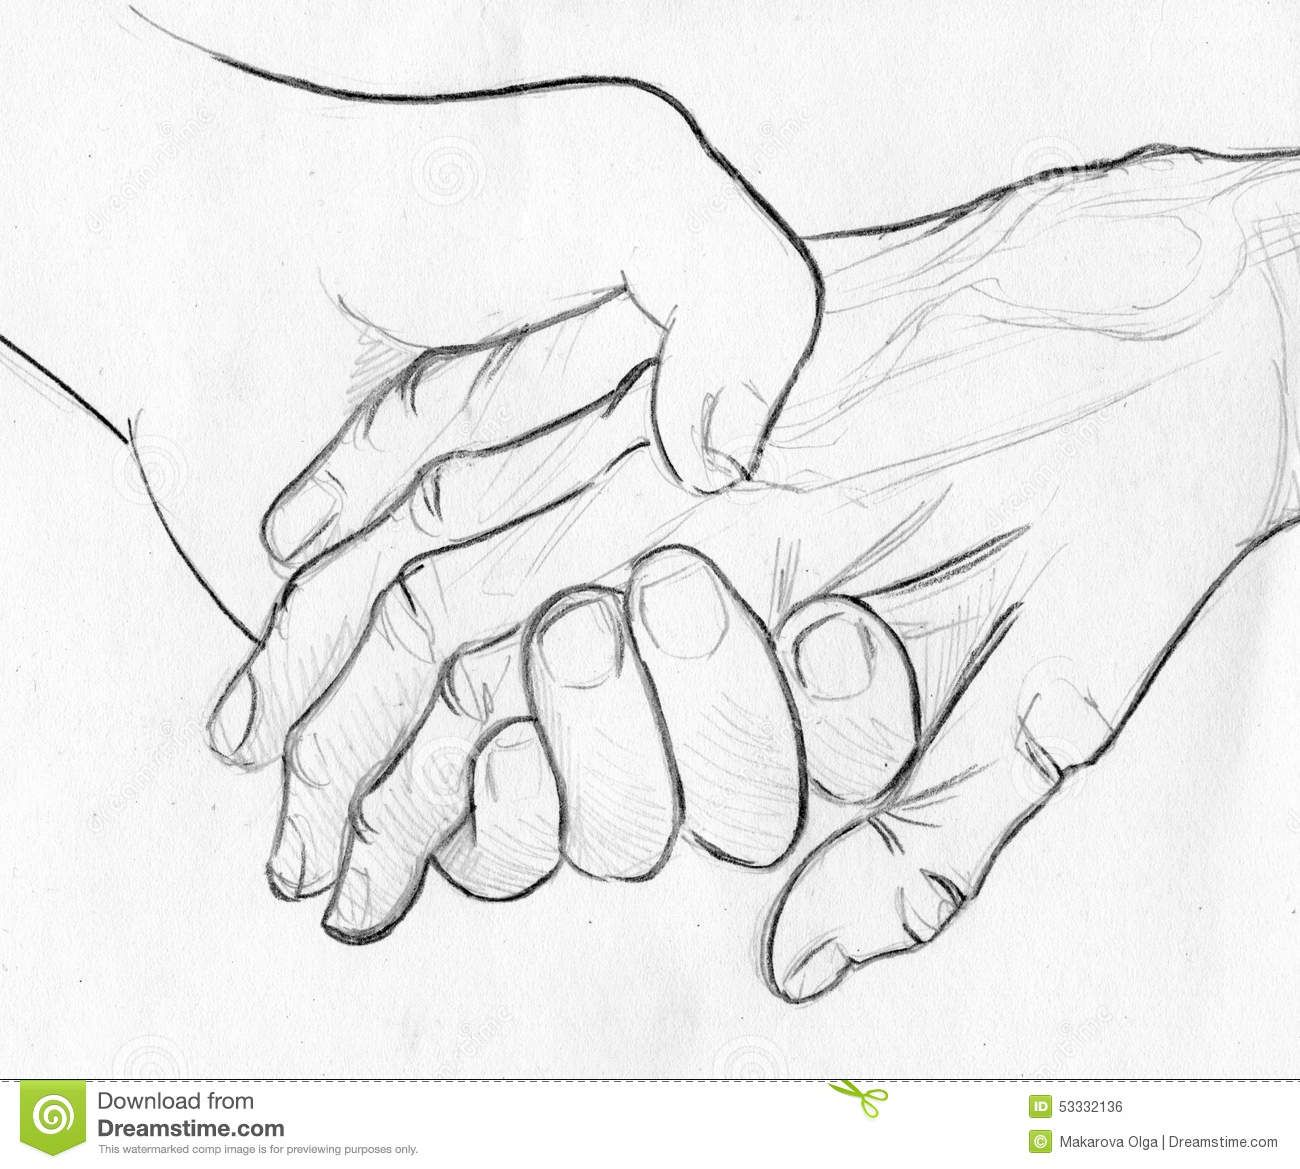 Holding Elderly Hand Pencil Sketch Hand Drawn Pencil Sketch Of Two Hands On Sponsored Elderly Hand Dra How To Draw Hands Pencil Sketch Hand Sketch Get inspired for two hands holding each